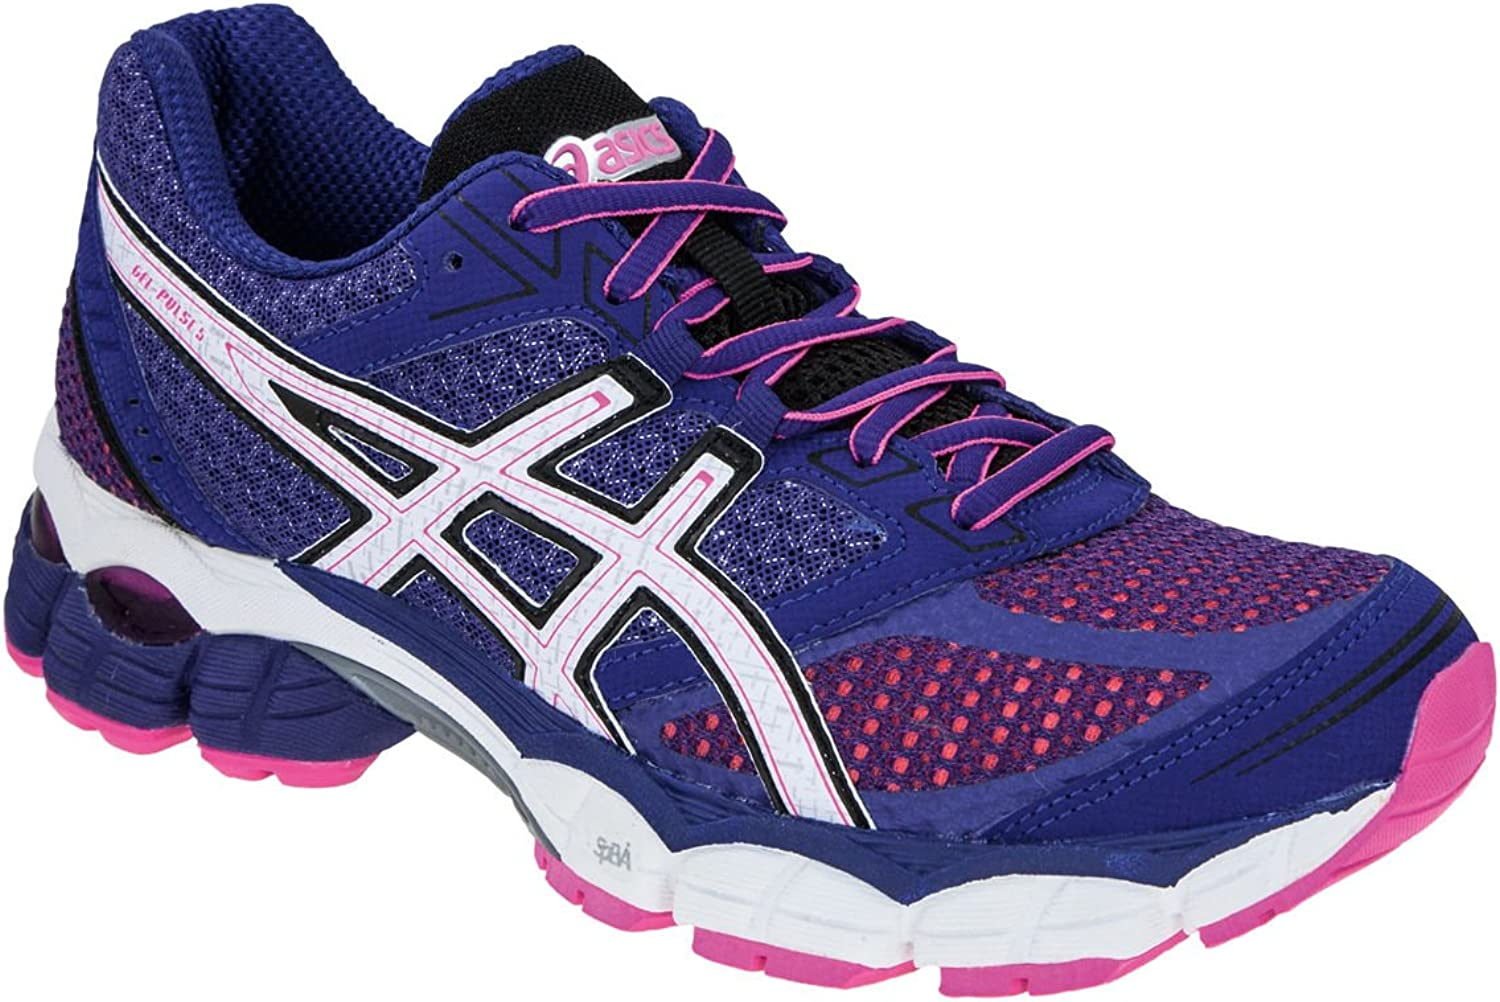 Asics Gel-Pulse 5, Zapatillas de Running para Mujer, Blue, 44.5 EU: Amazon.es: Zapatos y complementos